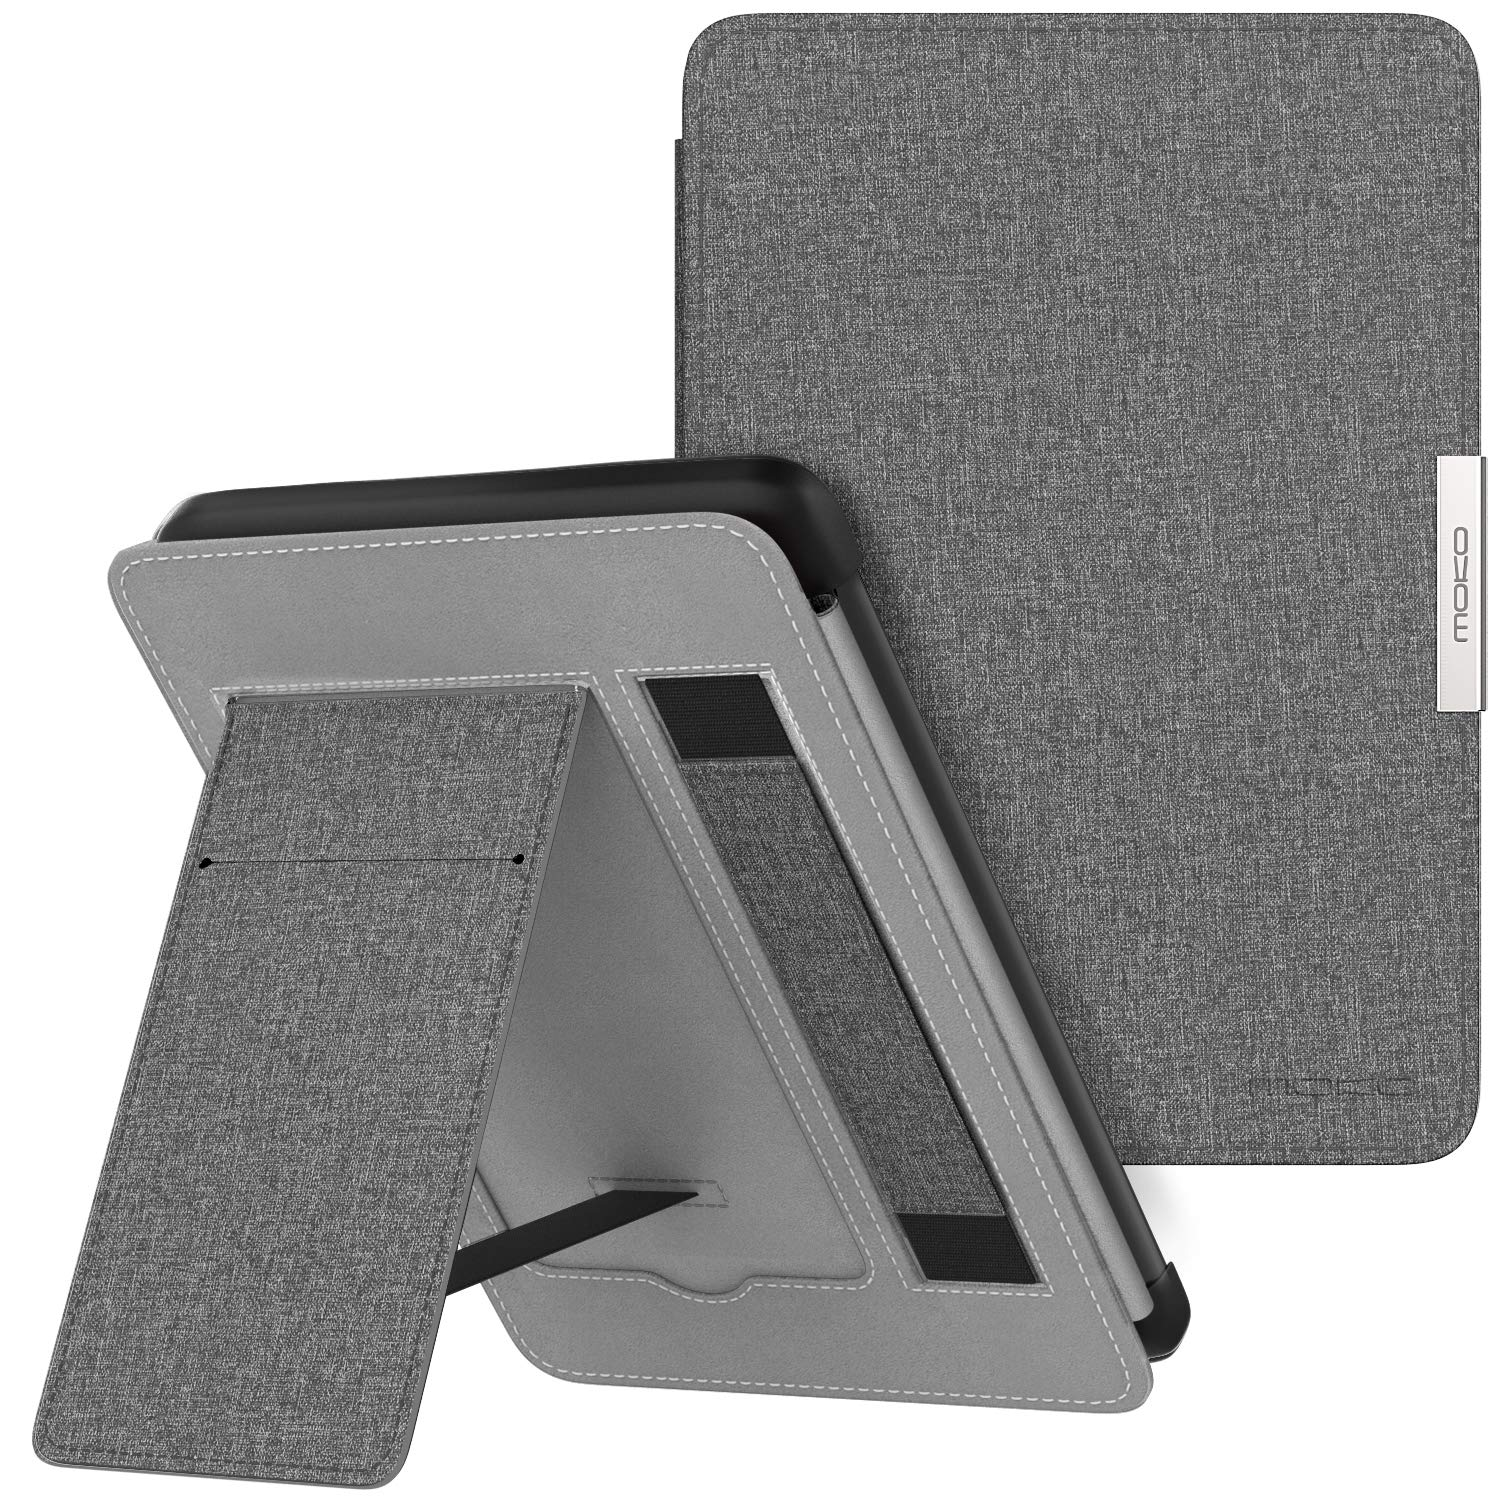 MoKo Case for Kindle Paperwhite, Premium PU Leather PC Hard Shell Smart Stand Cover Fits All Paperwhite Generations Prior to 2018 (Will not fit All-New Paperwhite 10th Generation), Gray